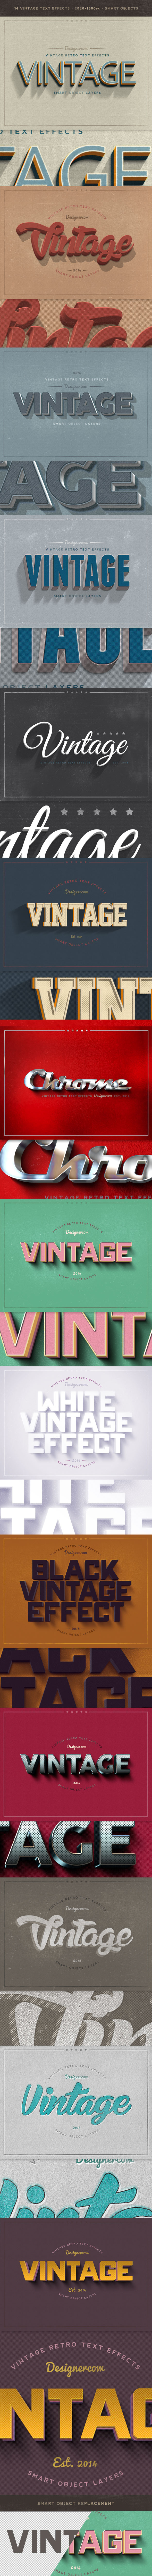 New Vintage Retro Text Effects - Text Effects Actions